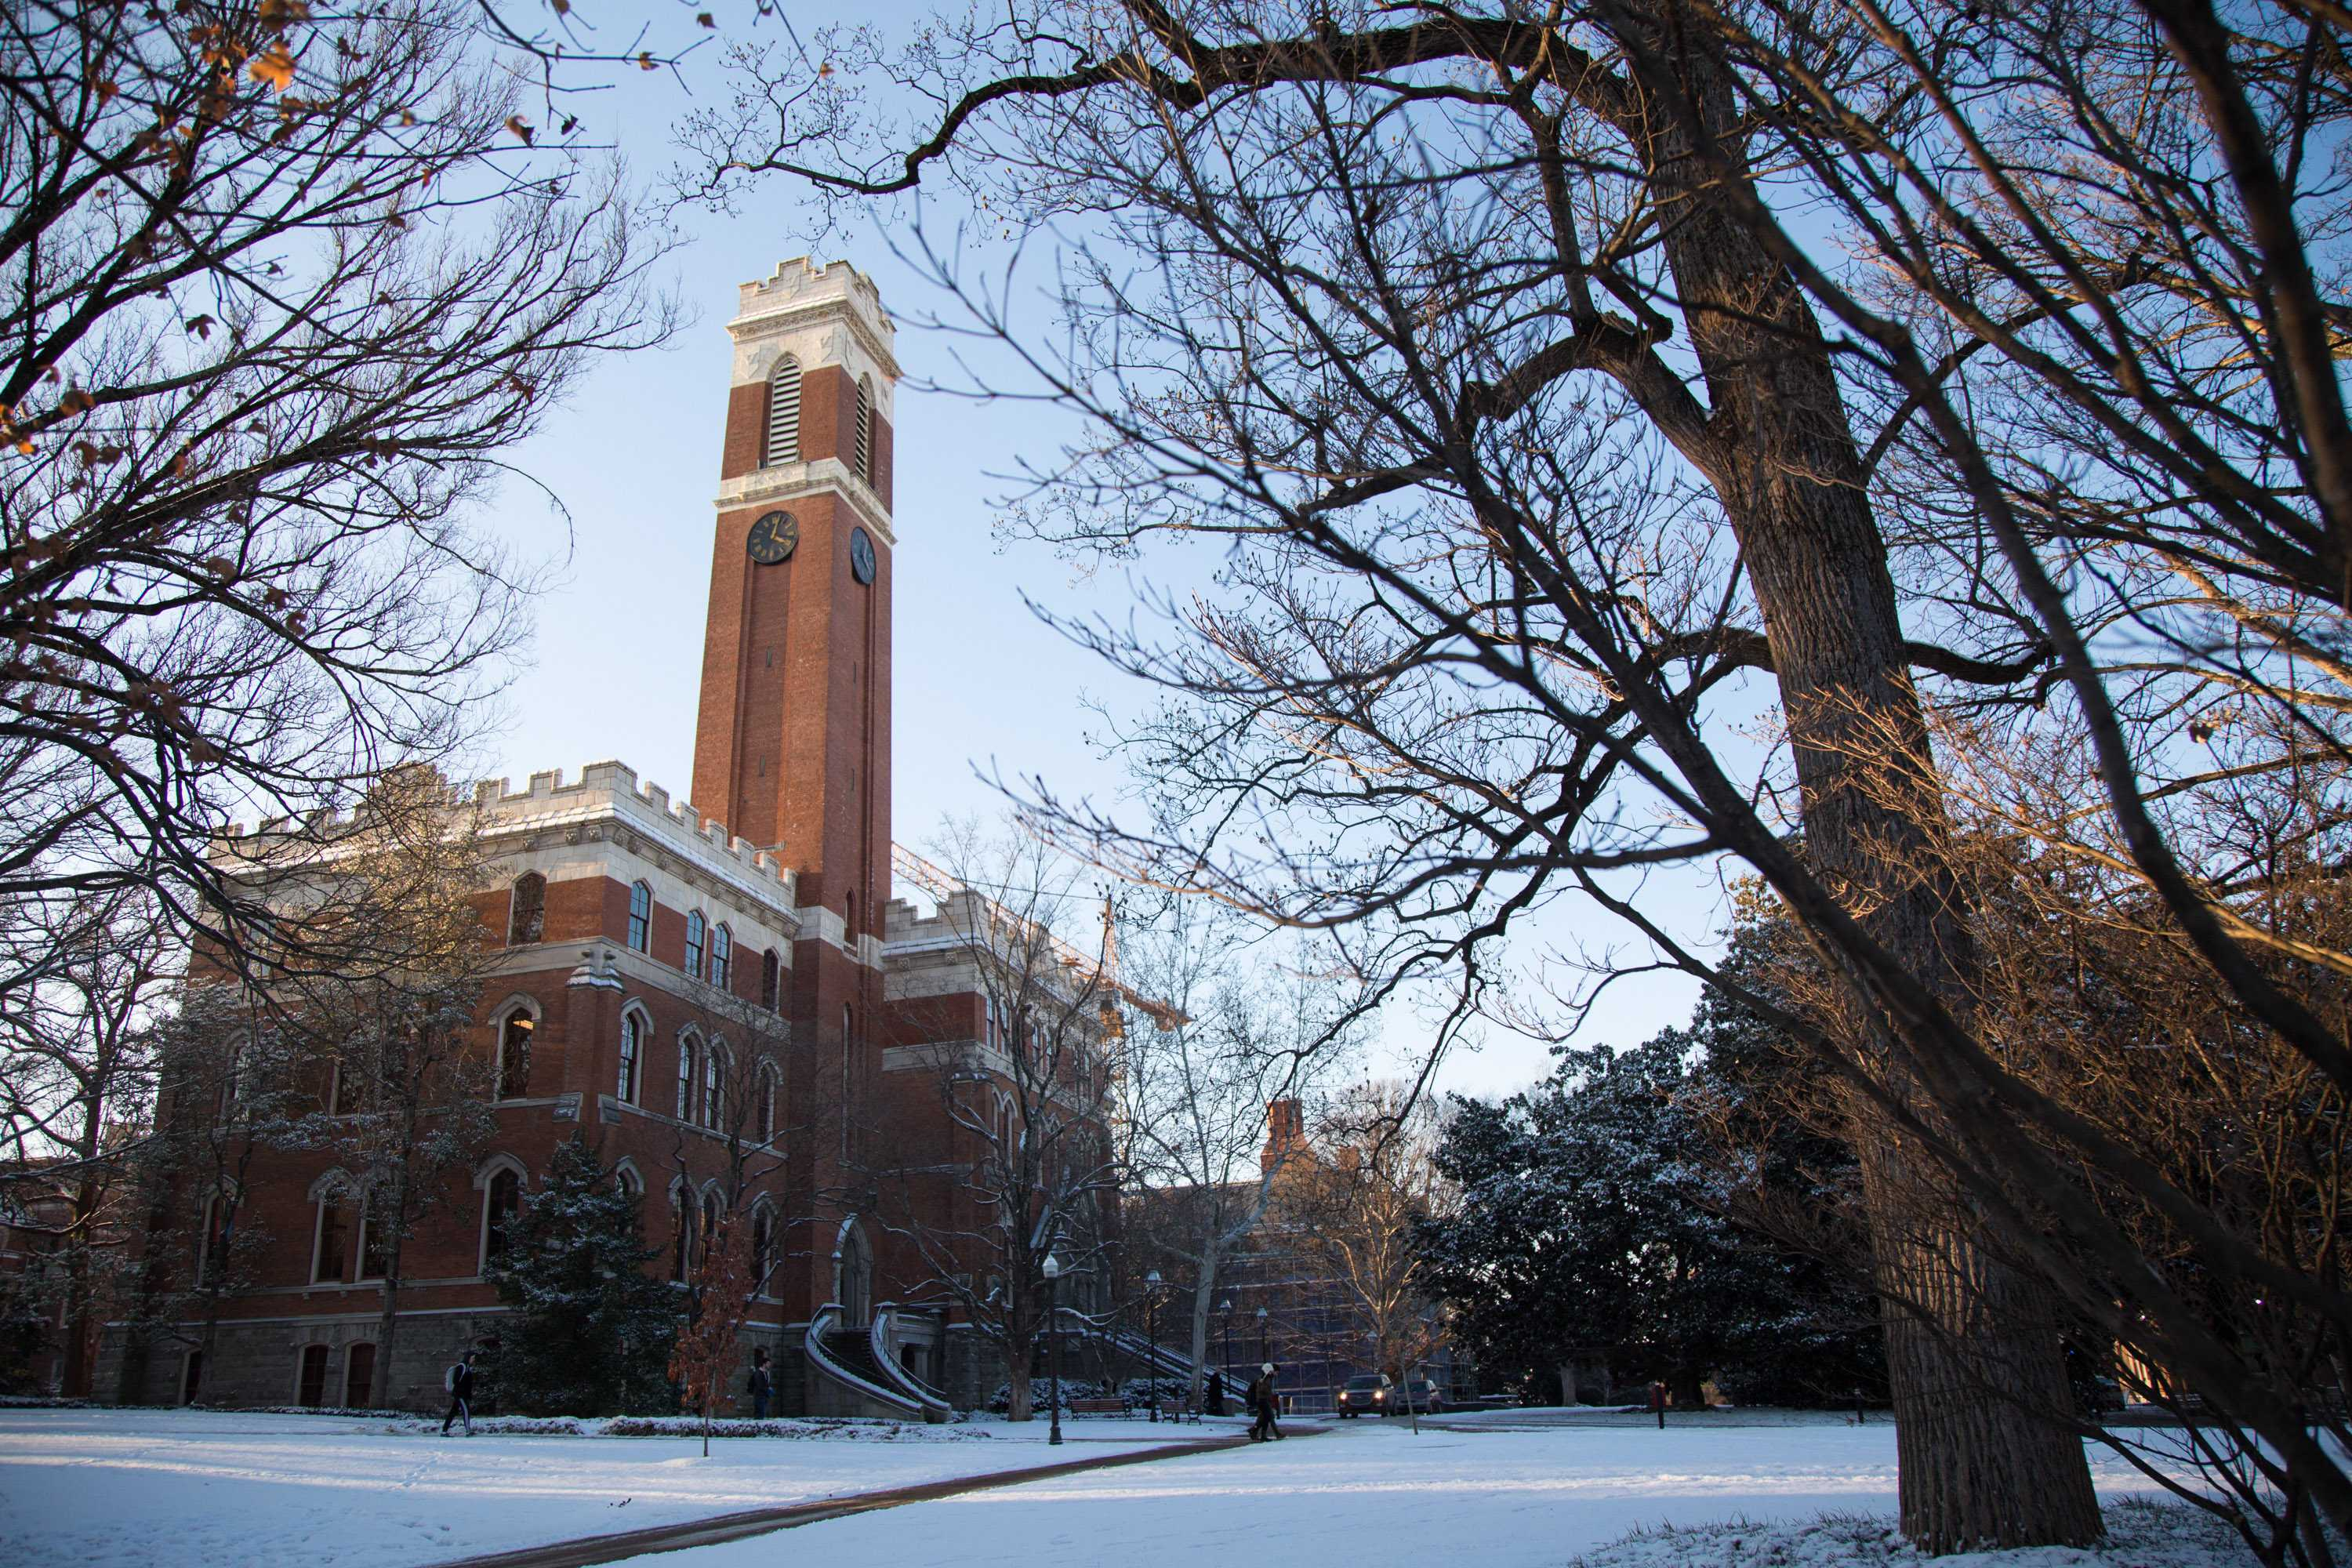 Vanderbilt announces room and board refunds; university invests $1 million in new Student Hardship Fund